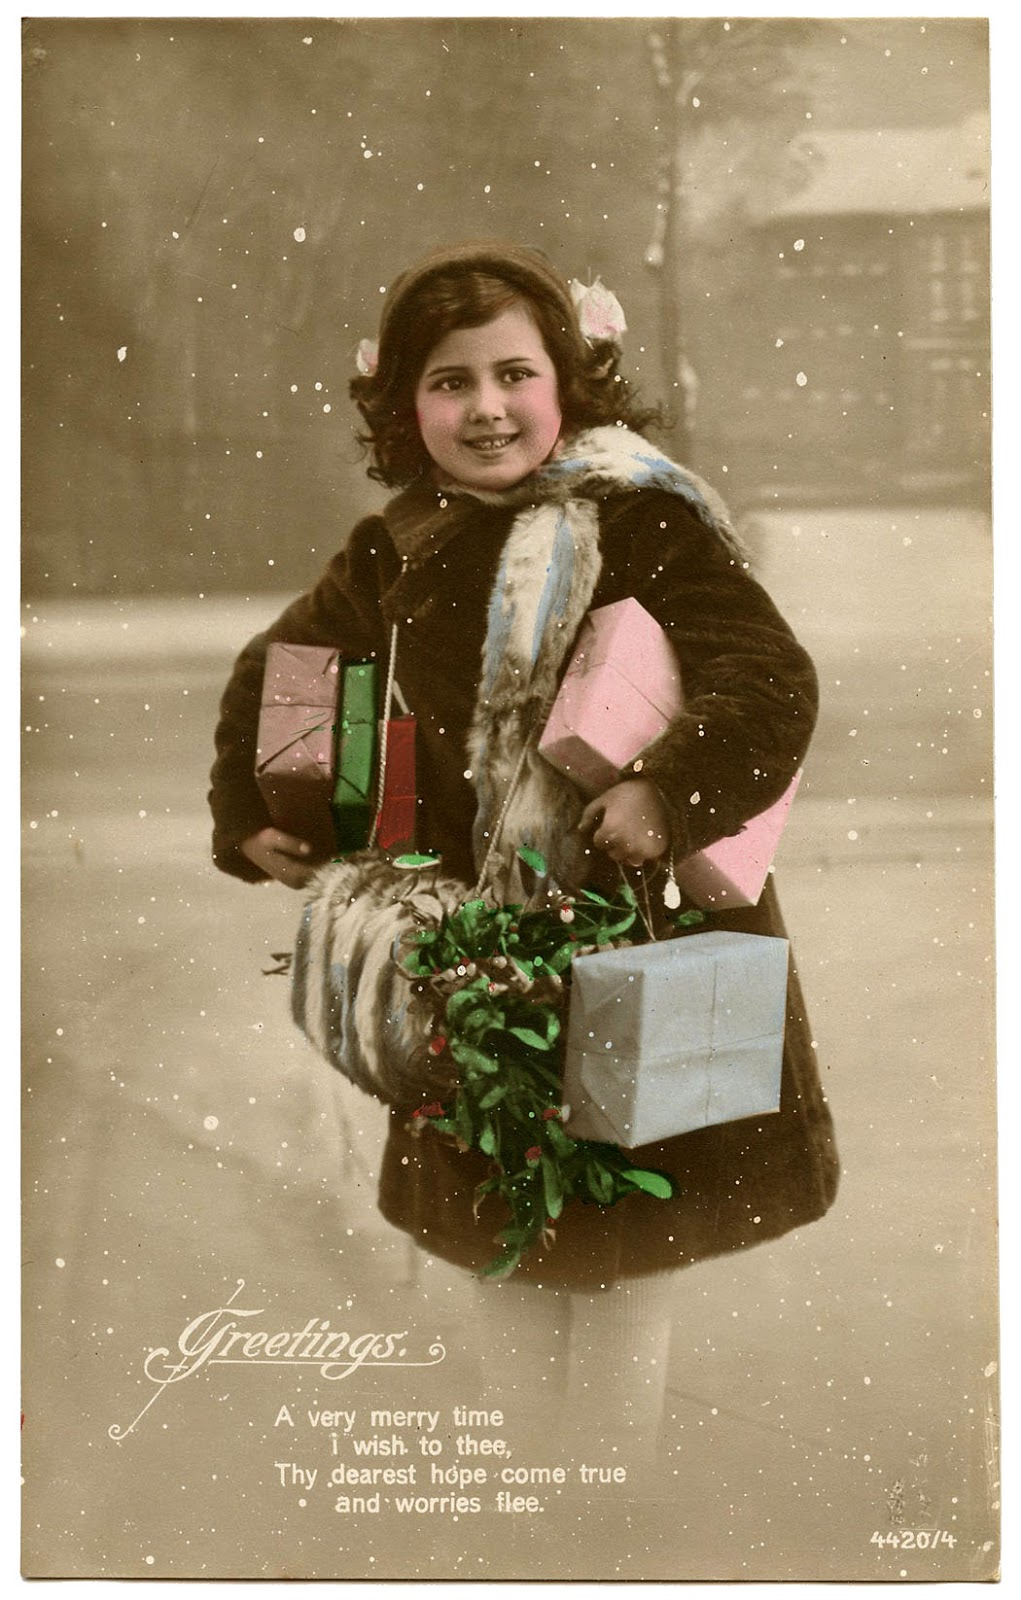 Old Photo Girl With Mistletoe Snow And Gifts The